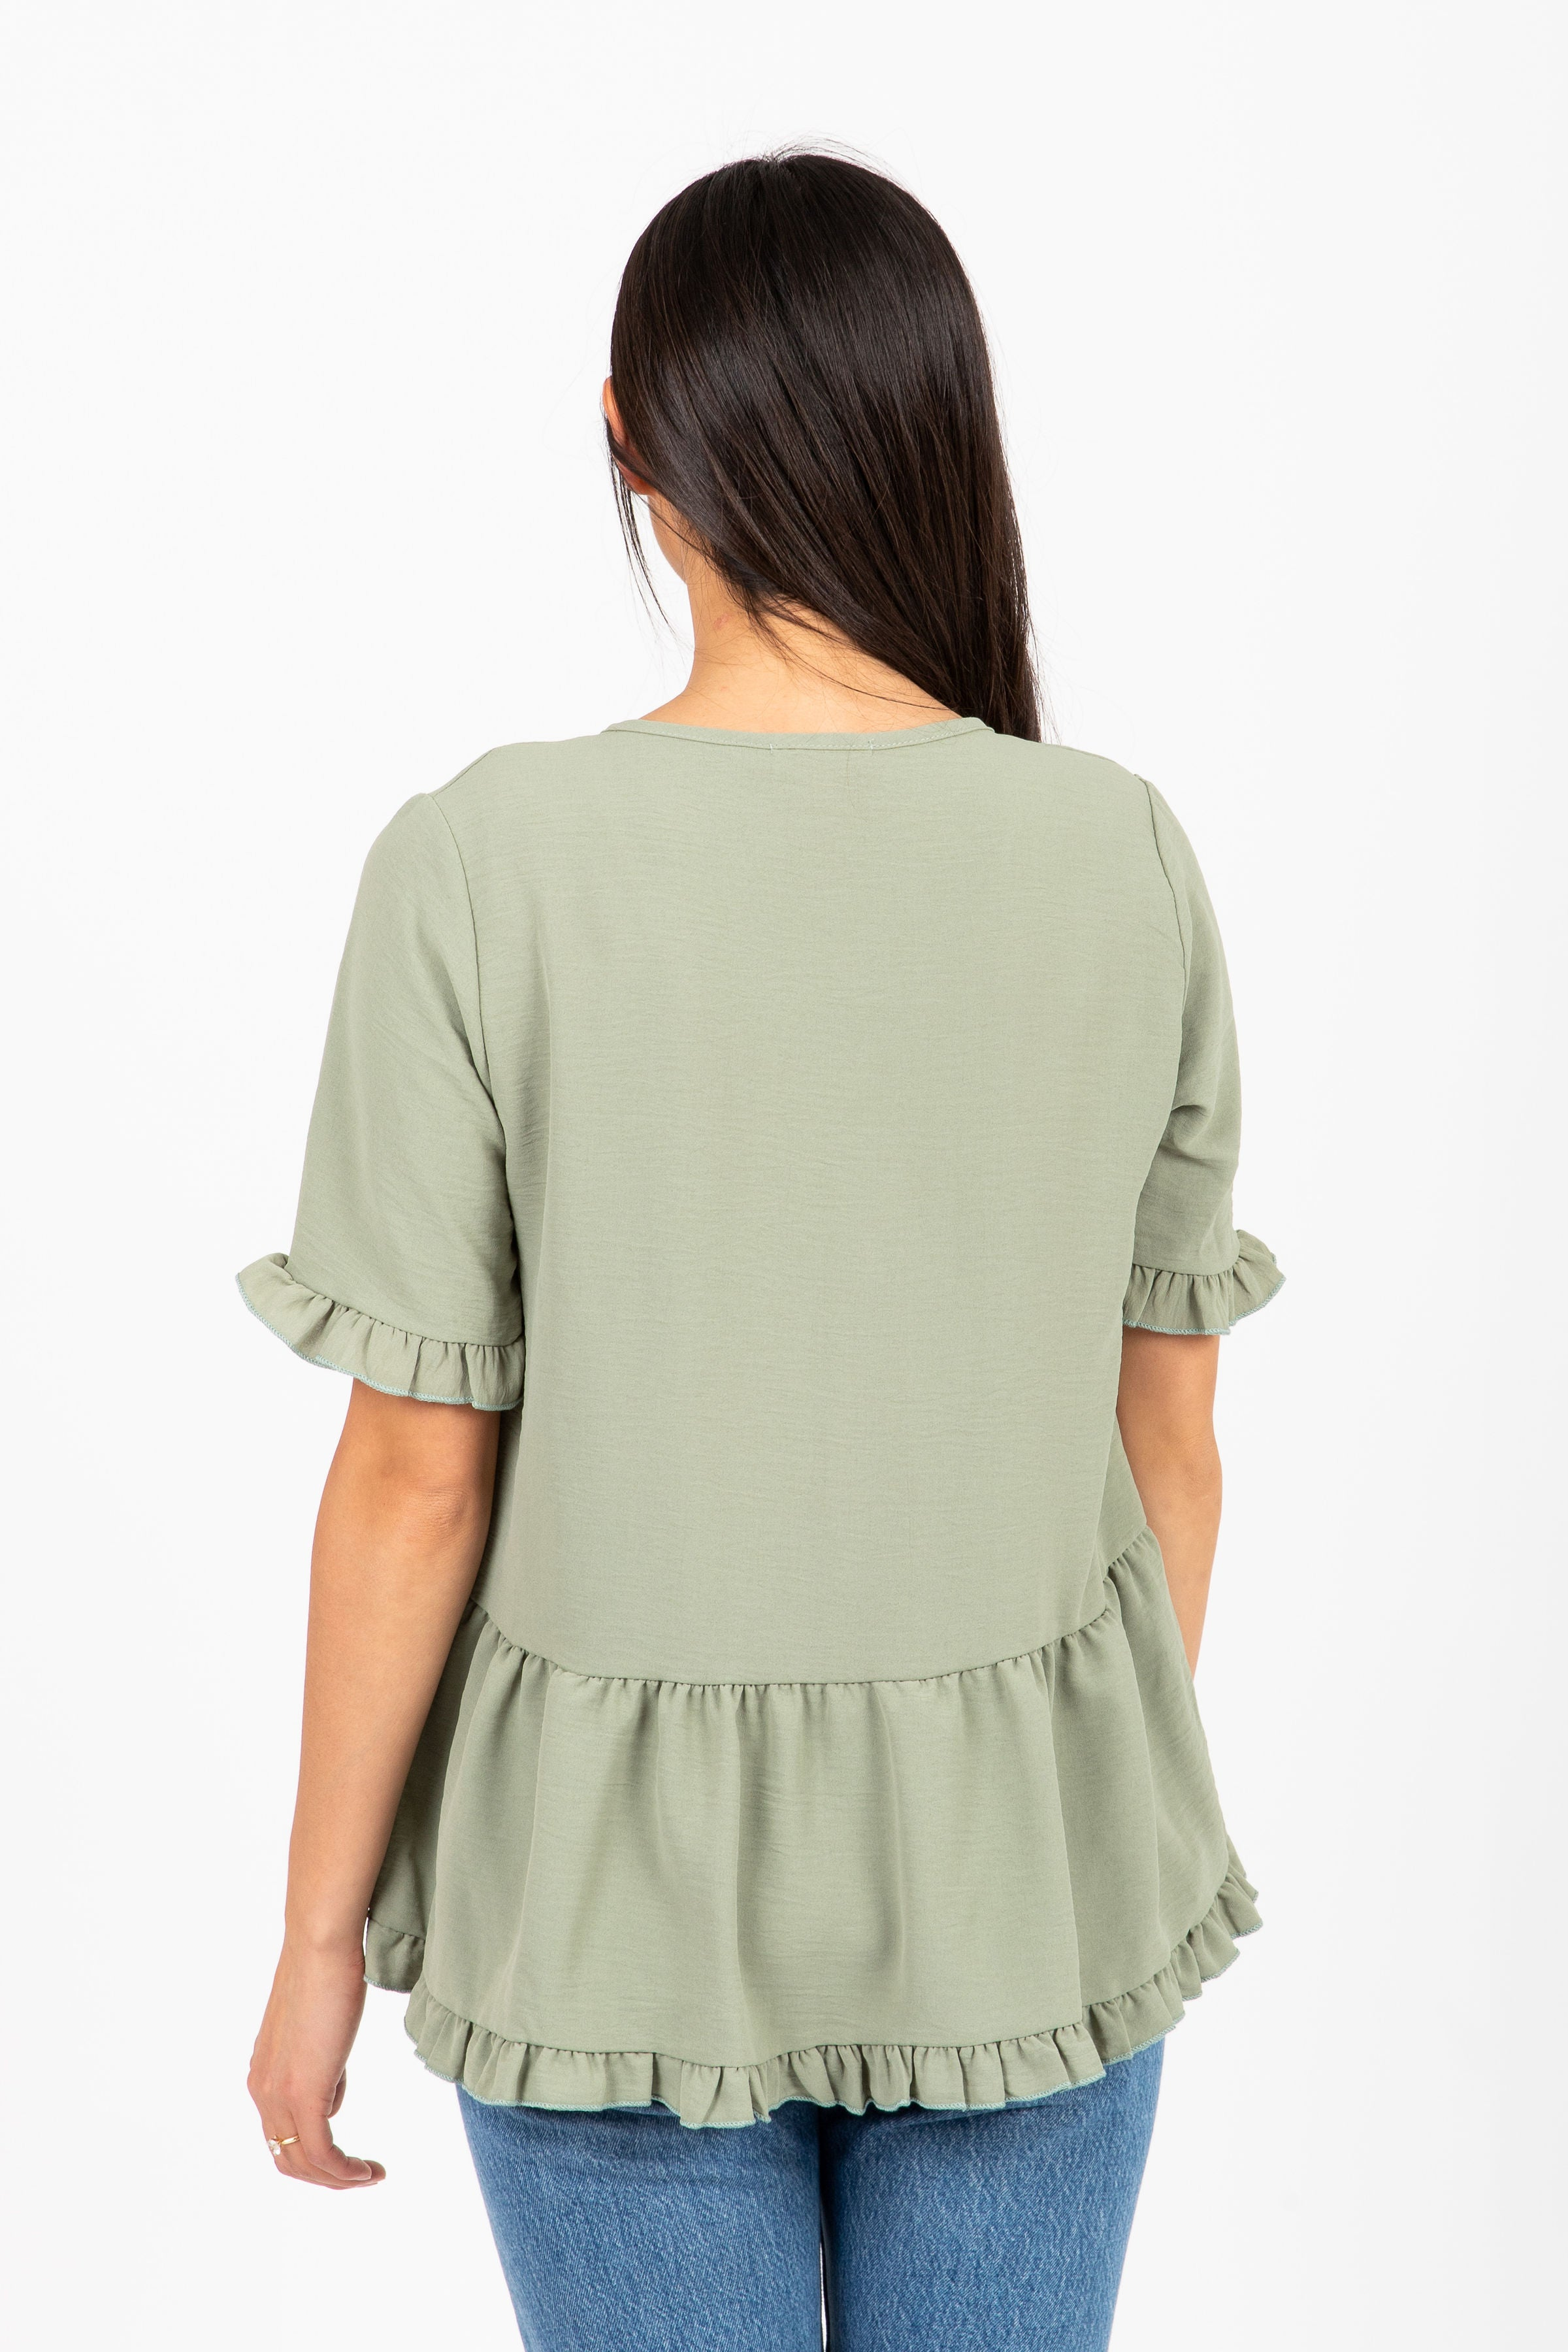 The Libra Ruffle Peplum Blouse in Light Olive